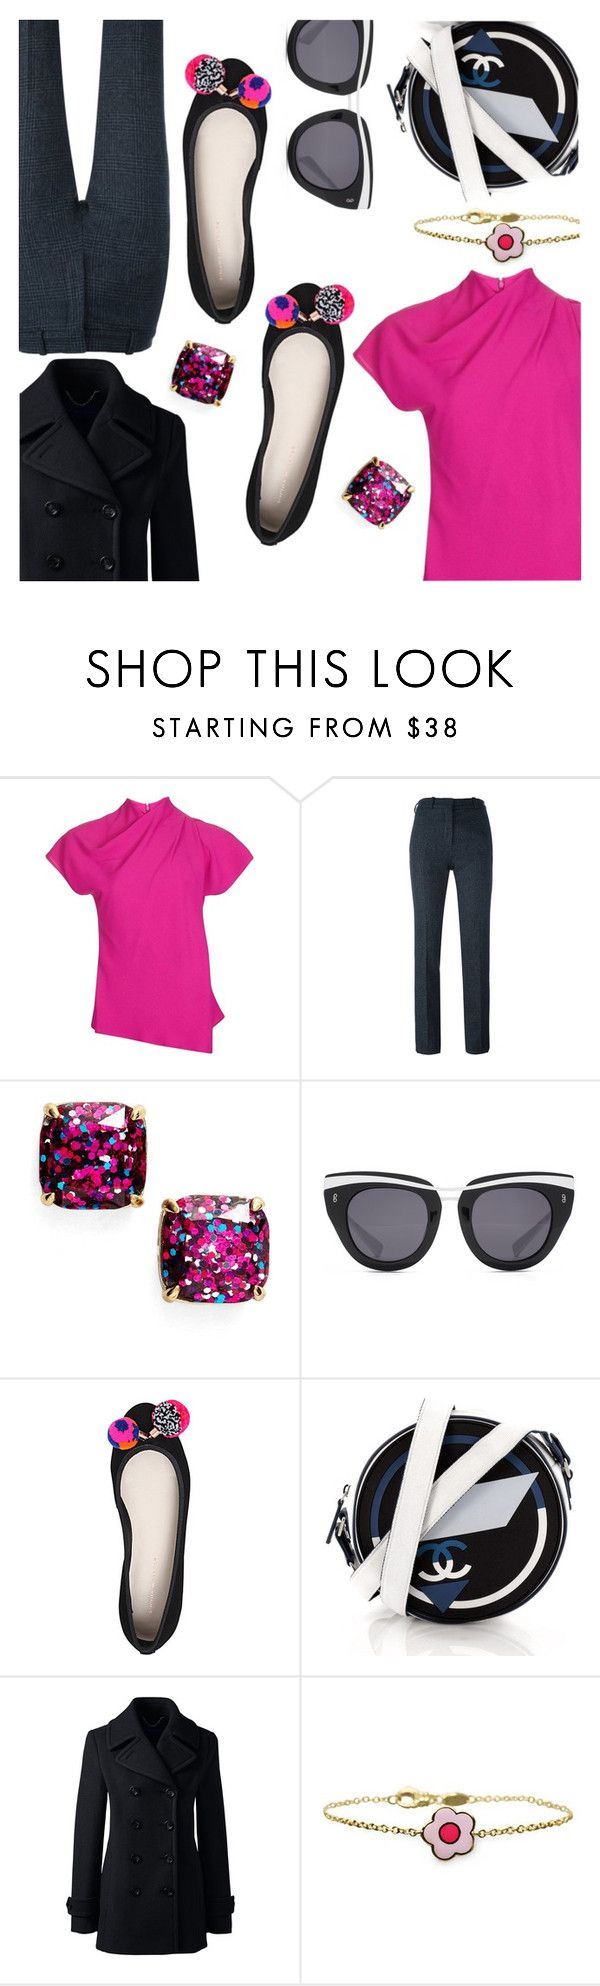 """Pink & Black & Tweed"" by stacey-lynne ❤ liked on Polyvore featuring Topshop, Victoria Beckham, Kate Spade, HOOK LDN, Sophia Webster, Chanel, Lands' End and Aaron Basha"